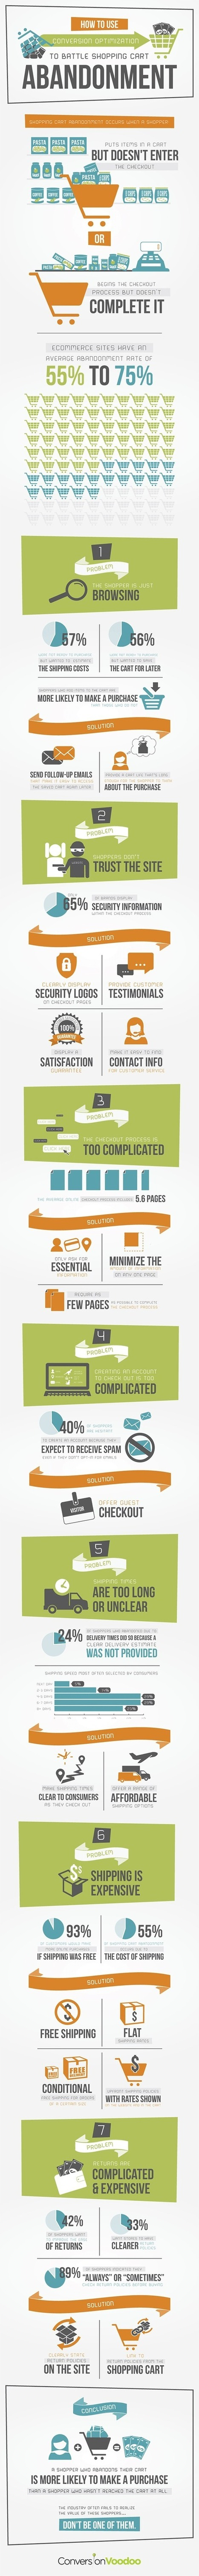 How To Use Conversion Optimization To Battle Shopping Cart Abandonment [Infographic]   webmarketing   Scoop.it